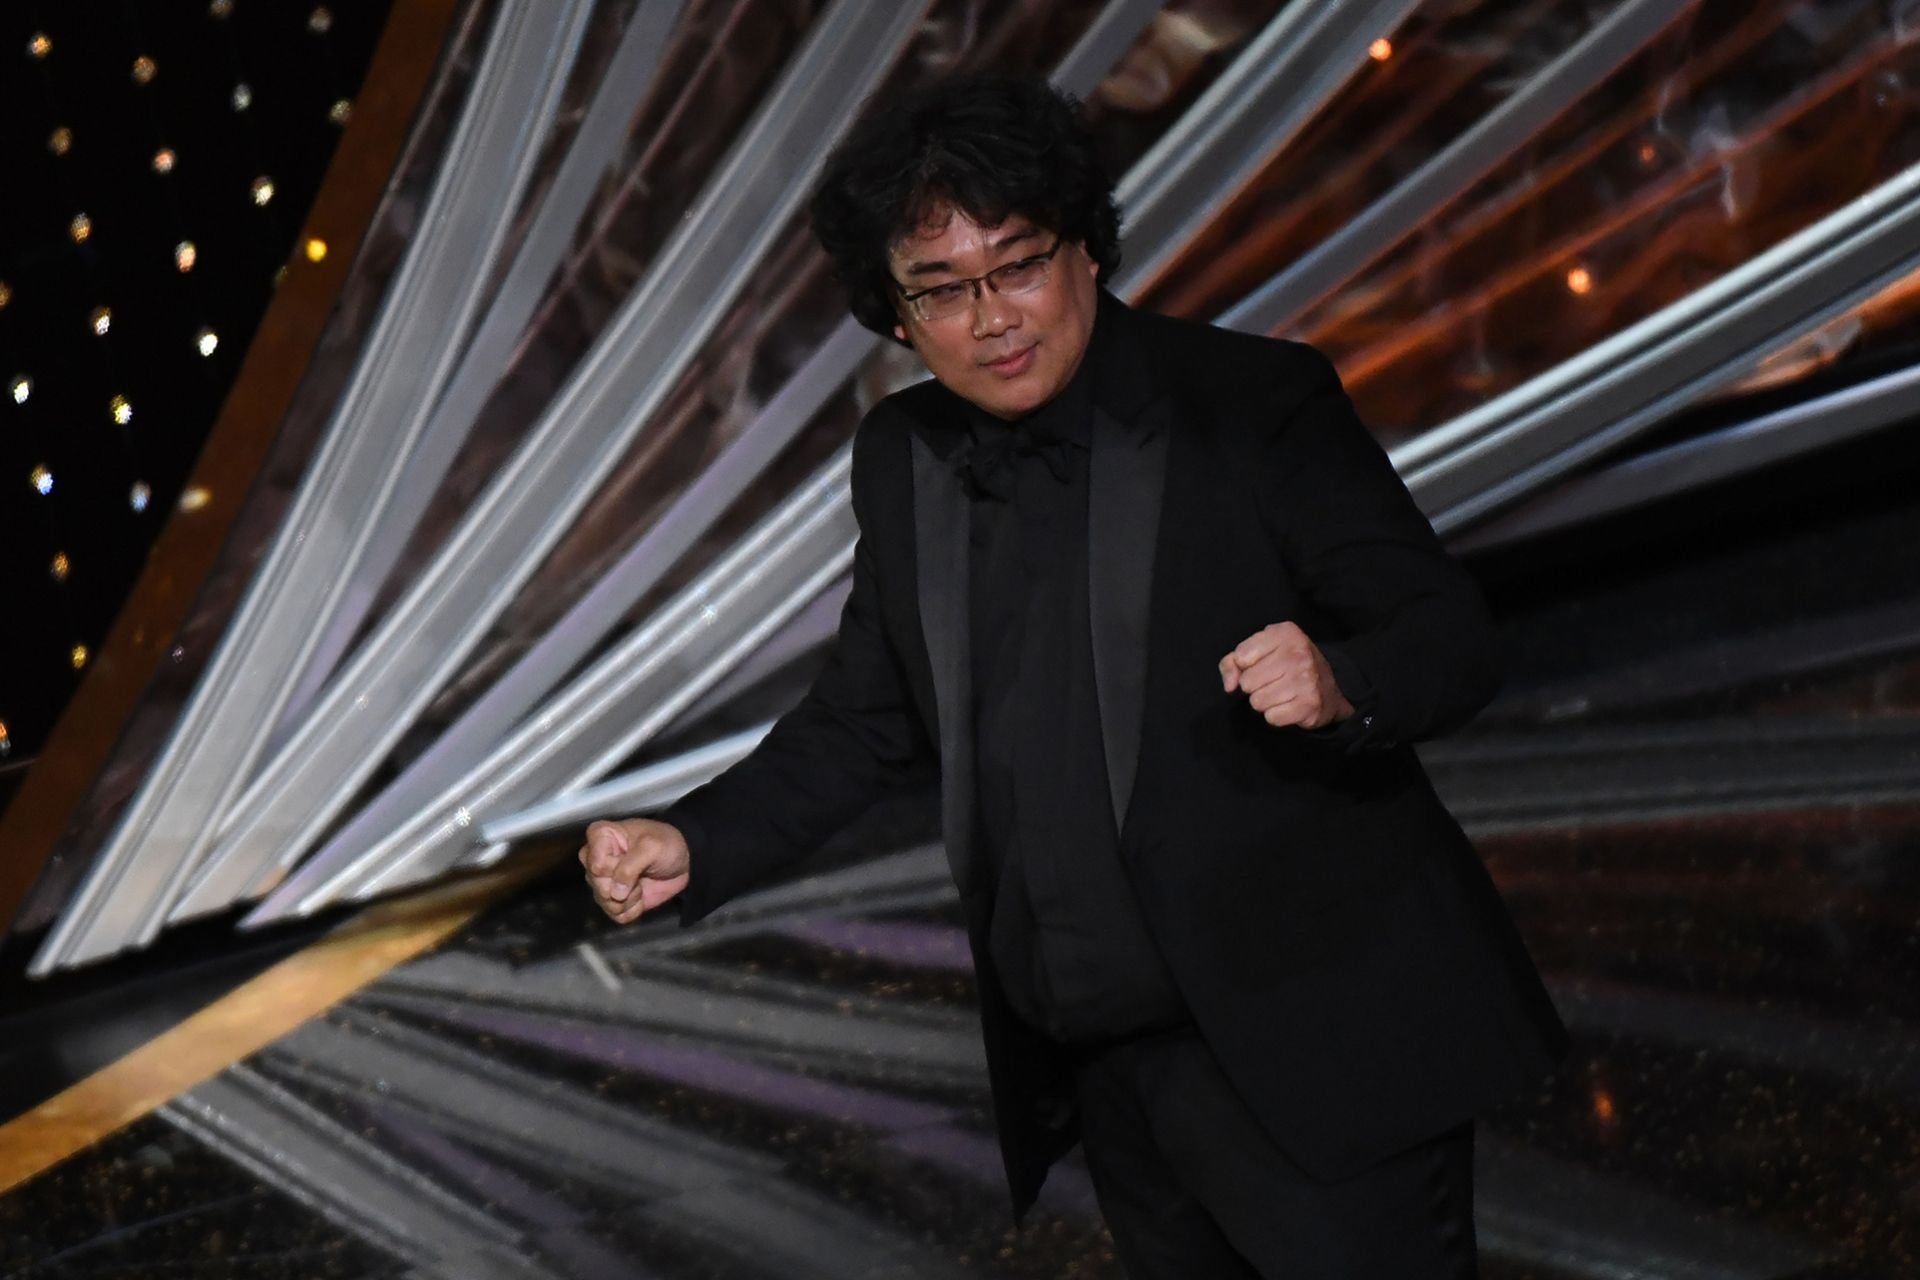 """""""Parasite"""" producer and director Bong Joon-ho celebrates after winning the award for Best Picture for """"Parasite"""" during the 92nd Oscars at the Dolby Theatre in Hollywood, California on February 9, 2020. (Photo by Mark RALSTON / AFP)"""